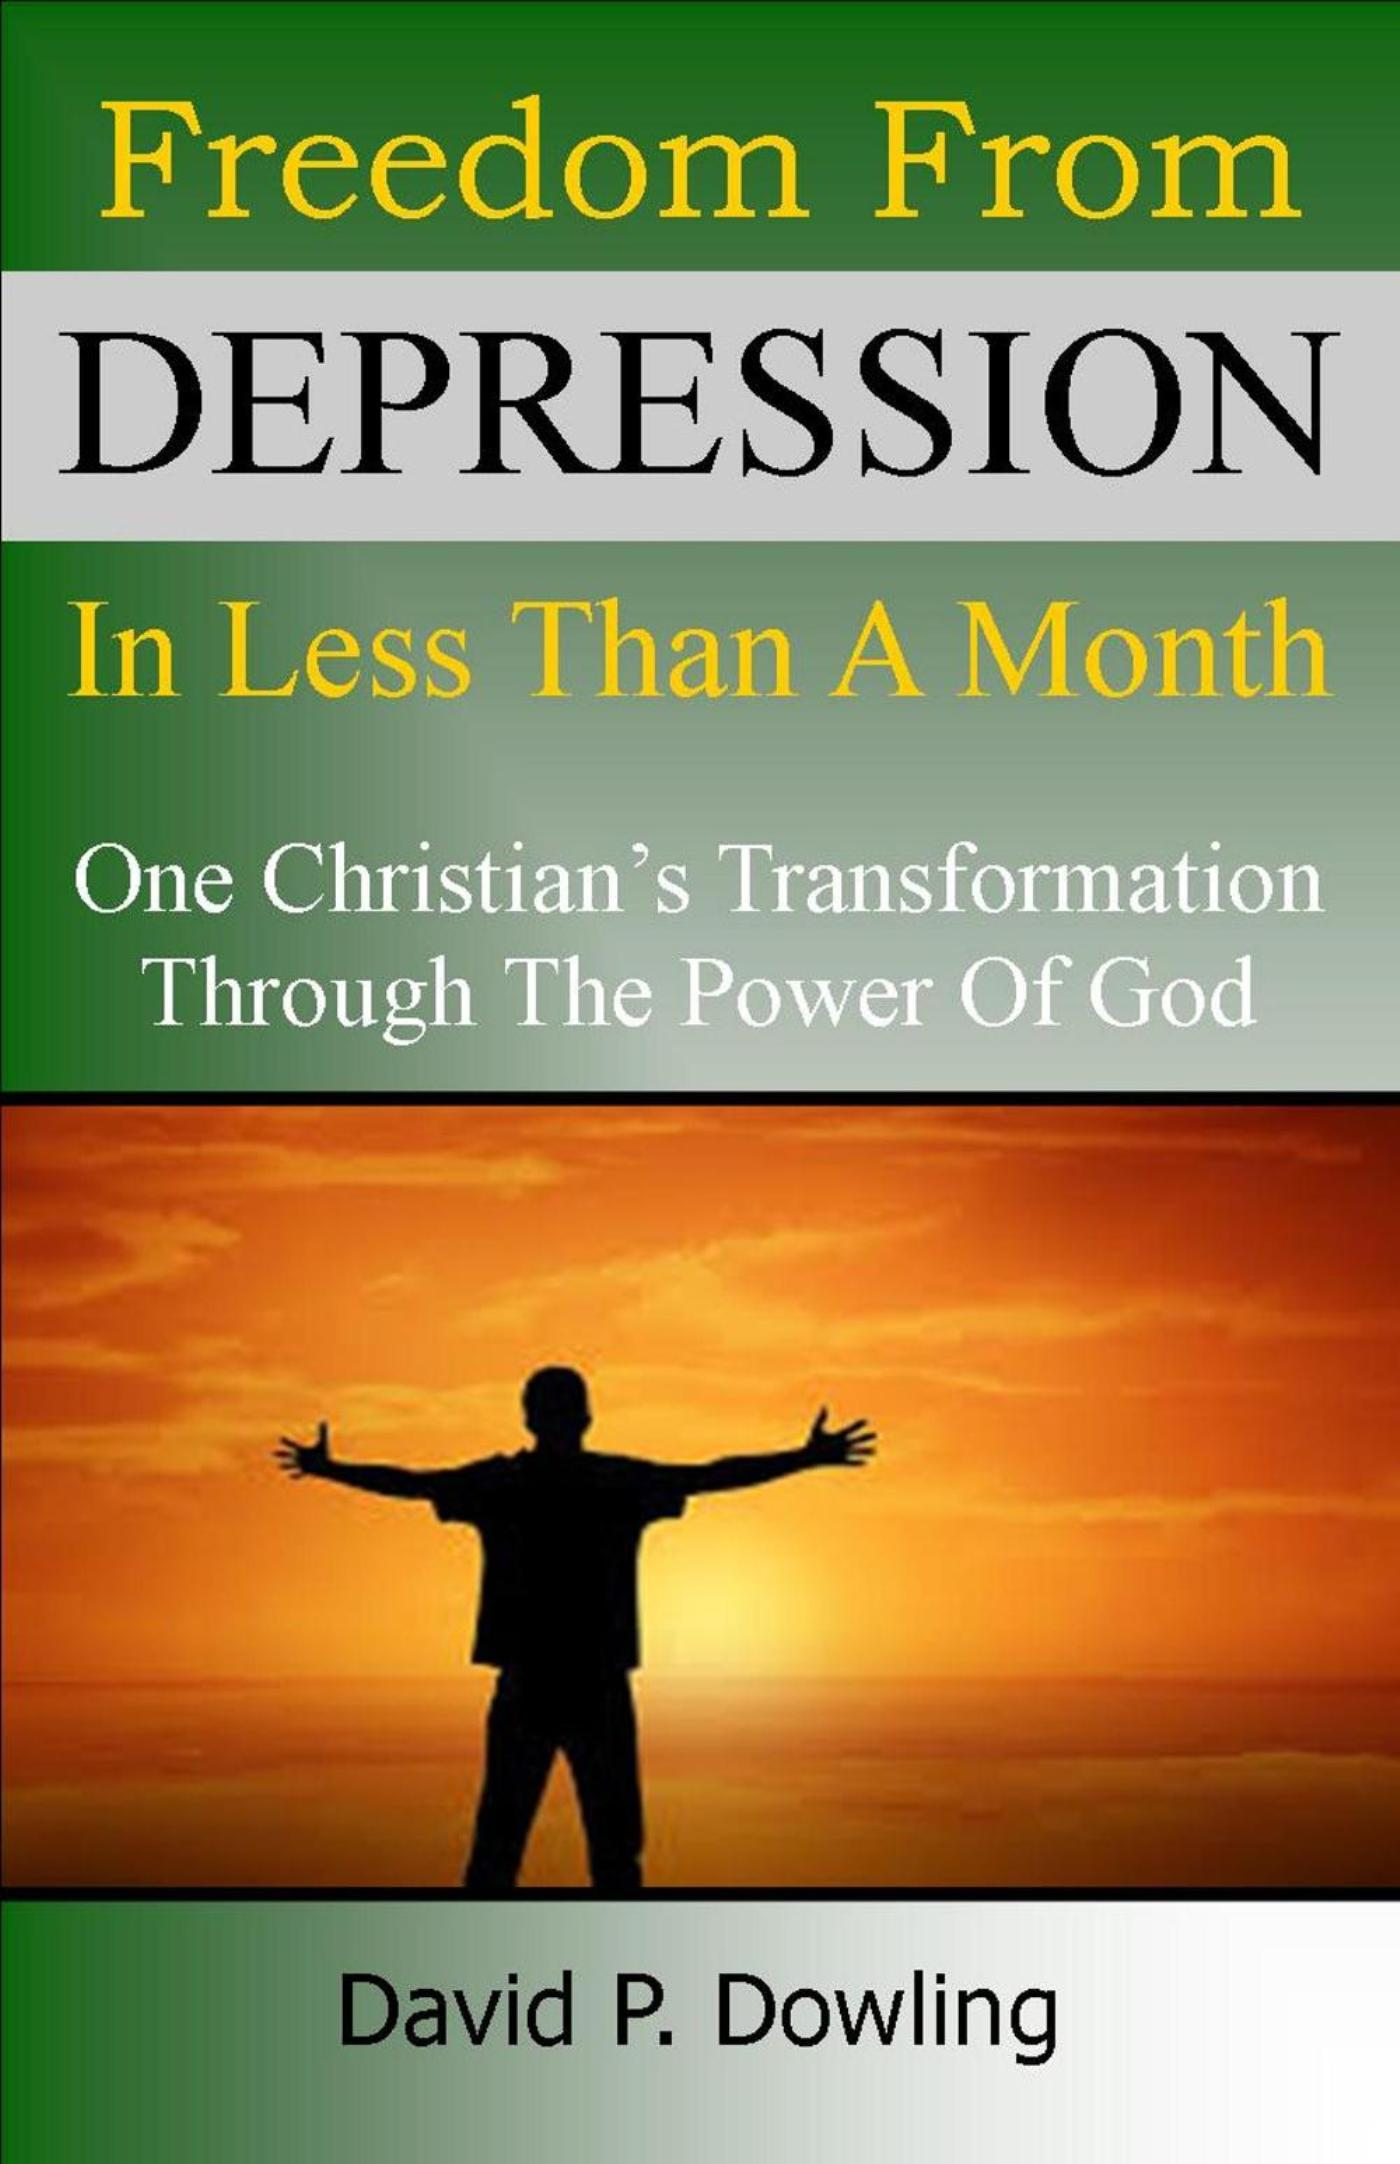 Freedom From Depression In Less Than A Month: One Christian's transformation through the power of God